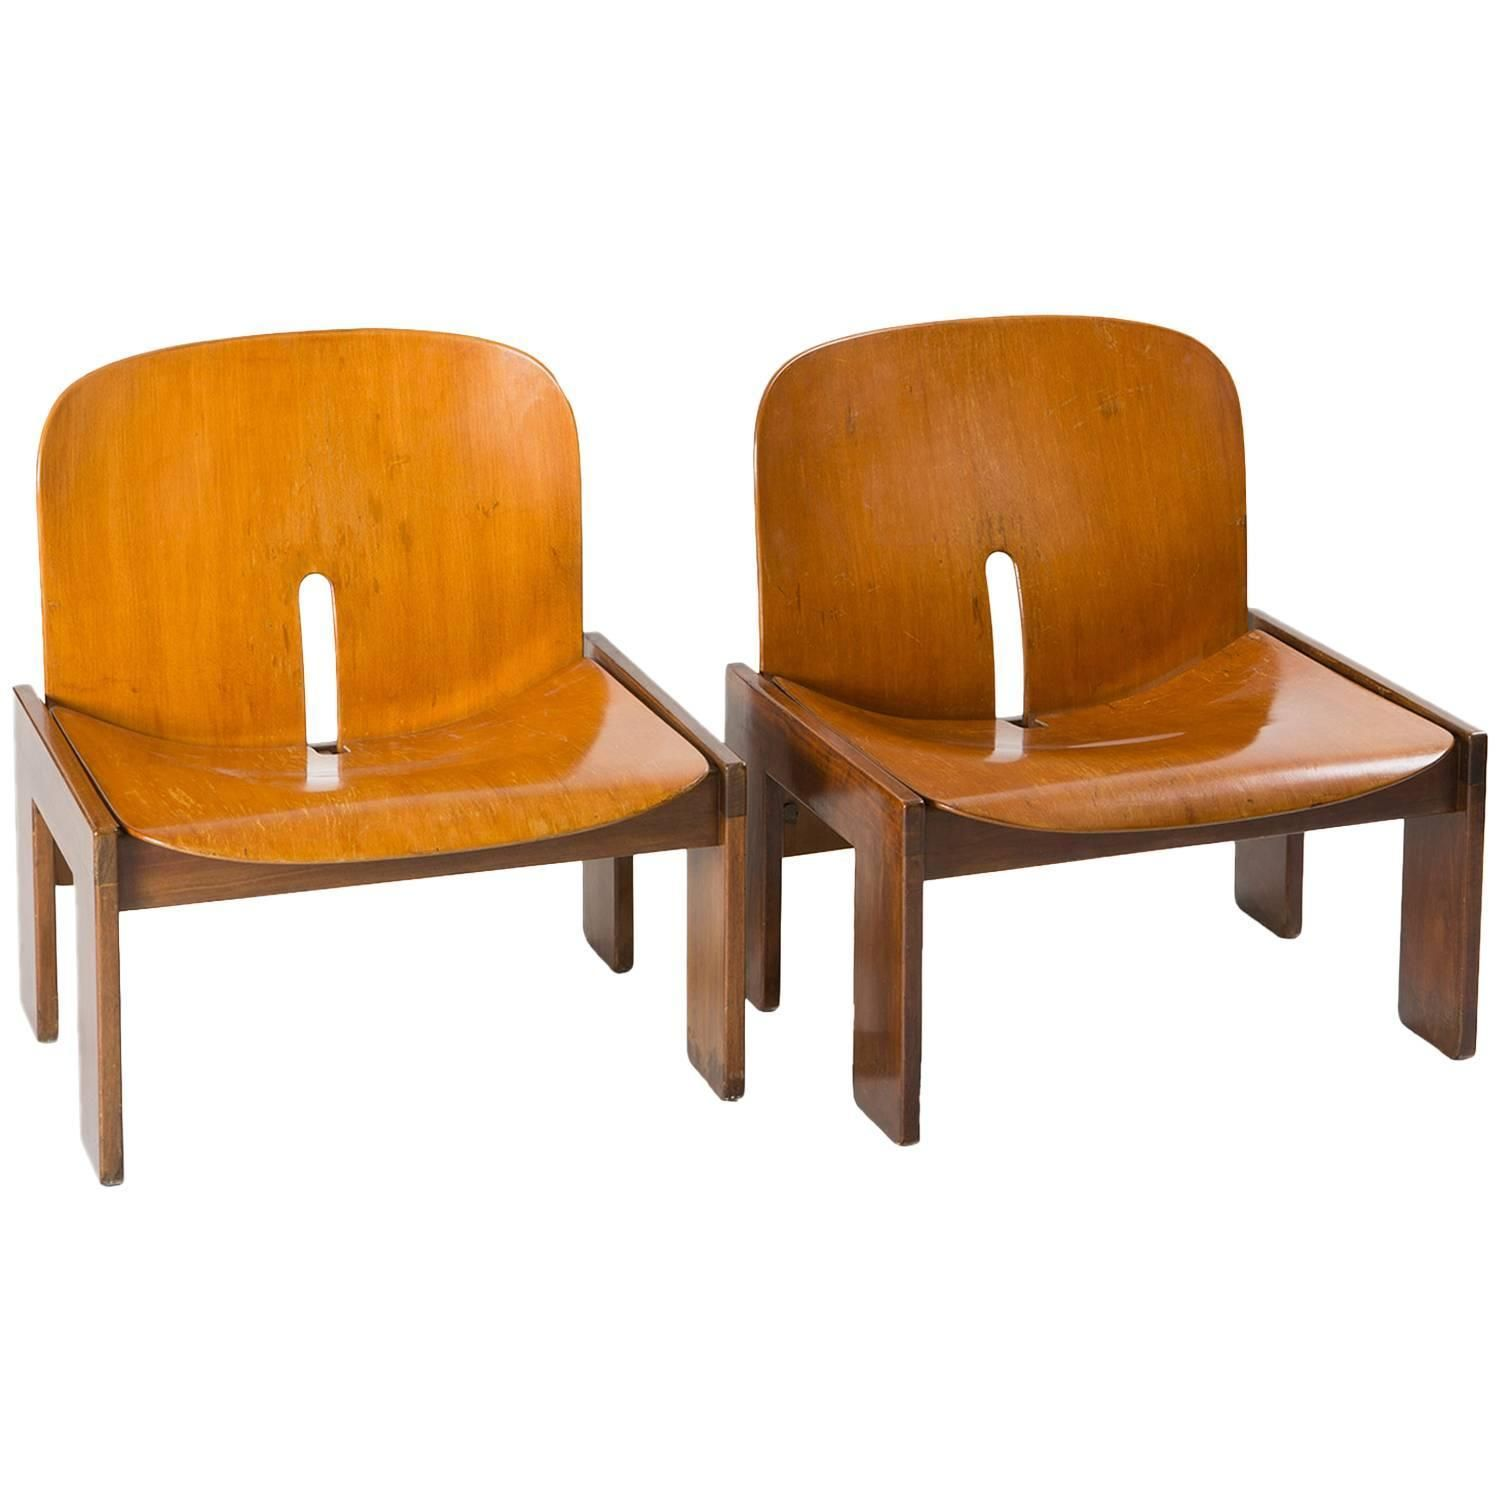 Pair of Lounge Chairs Model 925 by Scarpa for Cassina